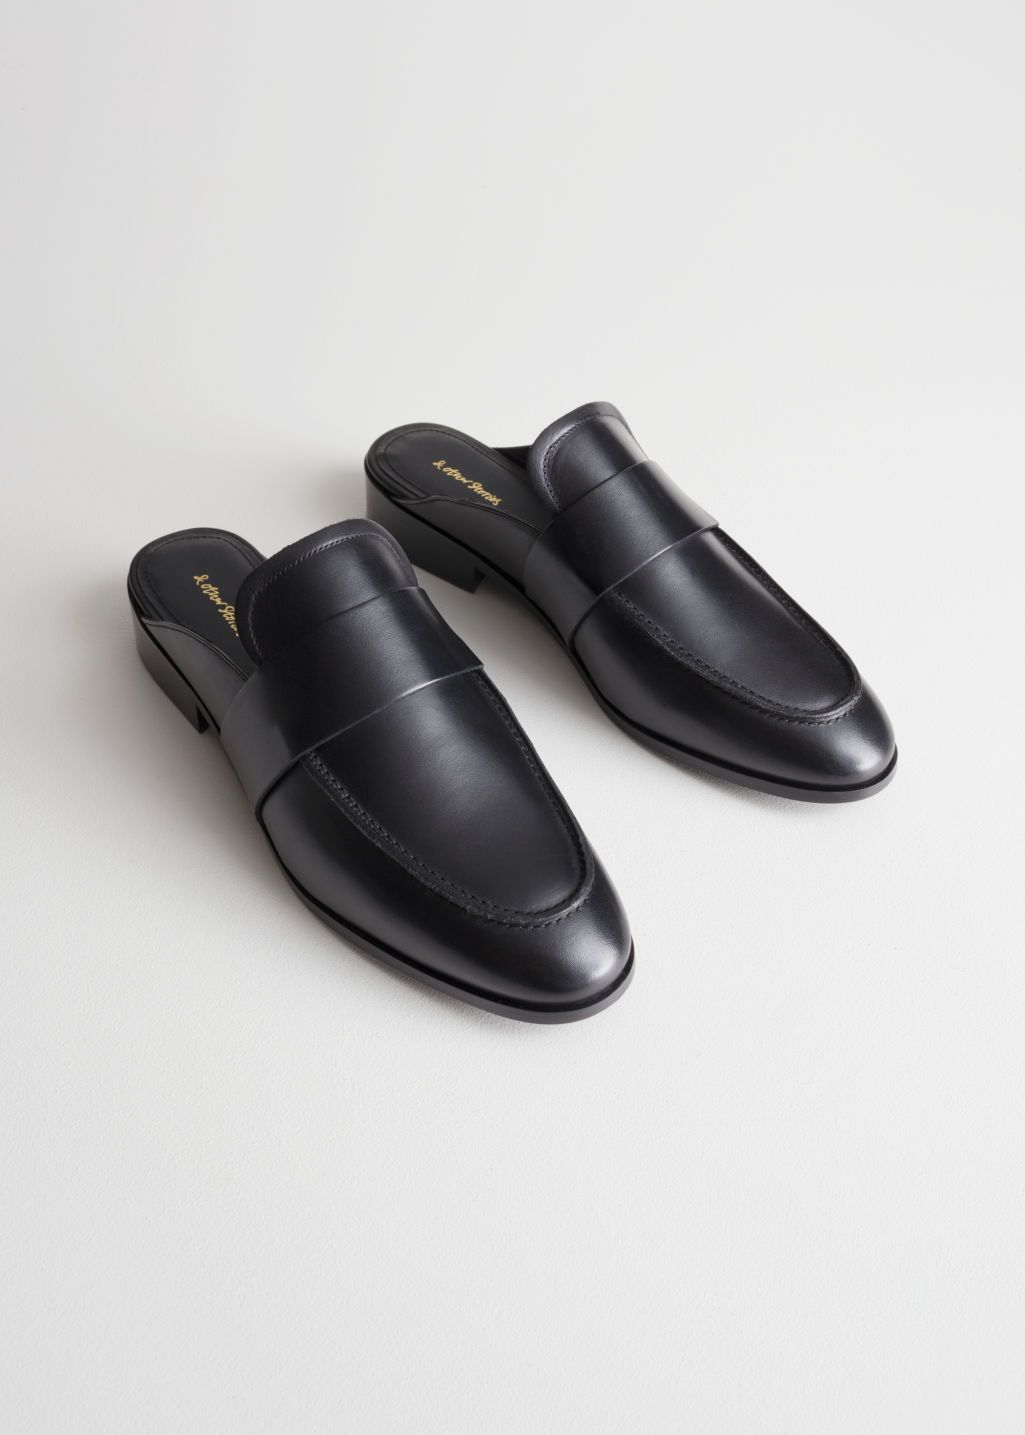 Men/'s Genuine Leather Buckle Mules Slip On Slippers Backless Flats Black Shoes